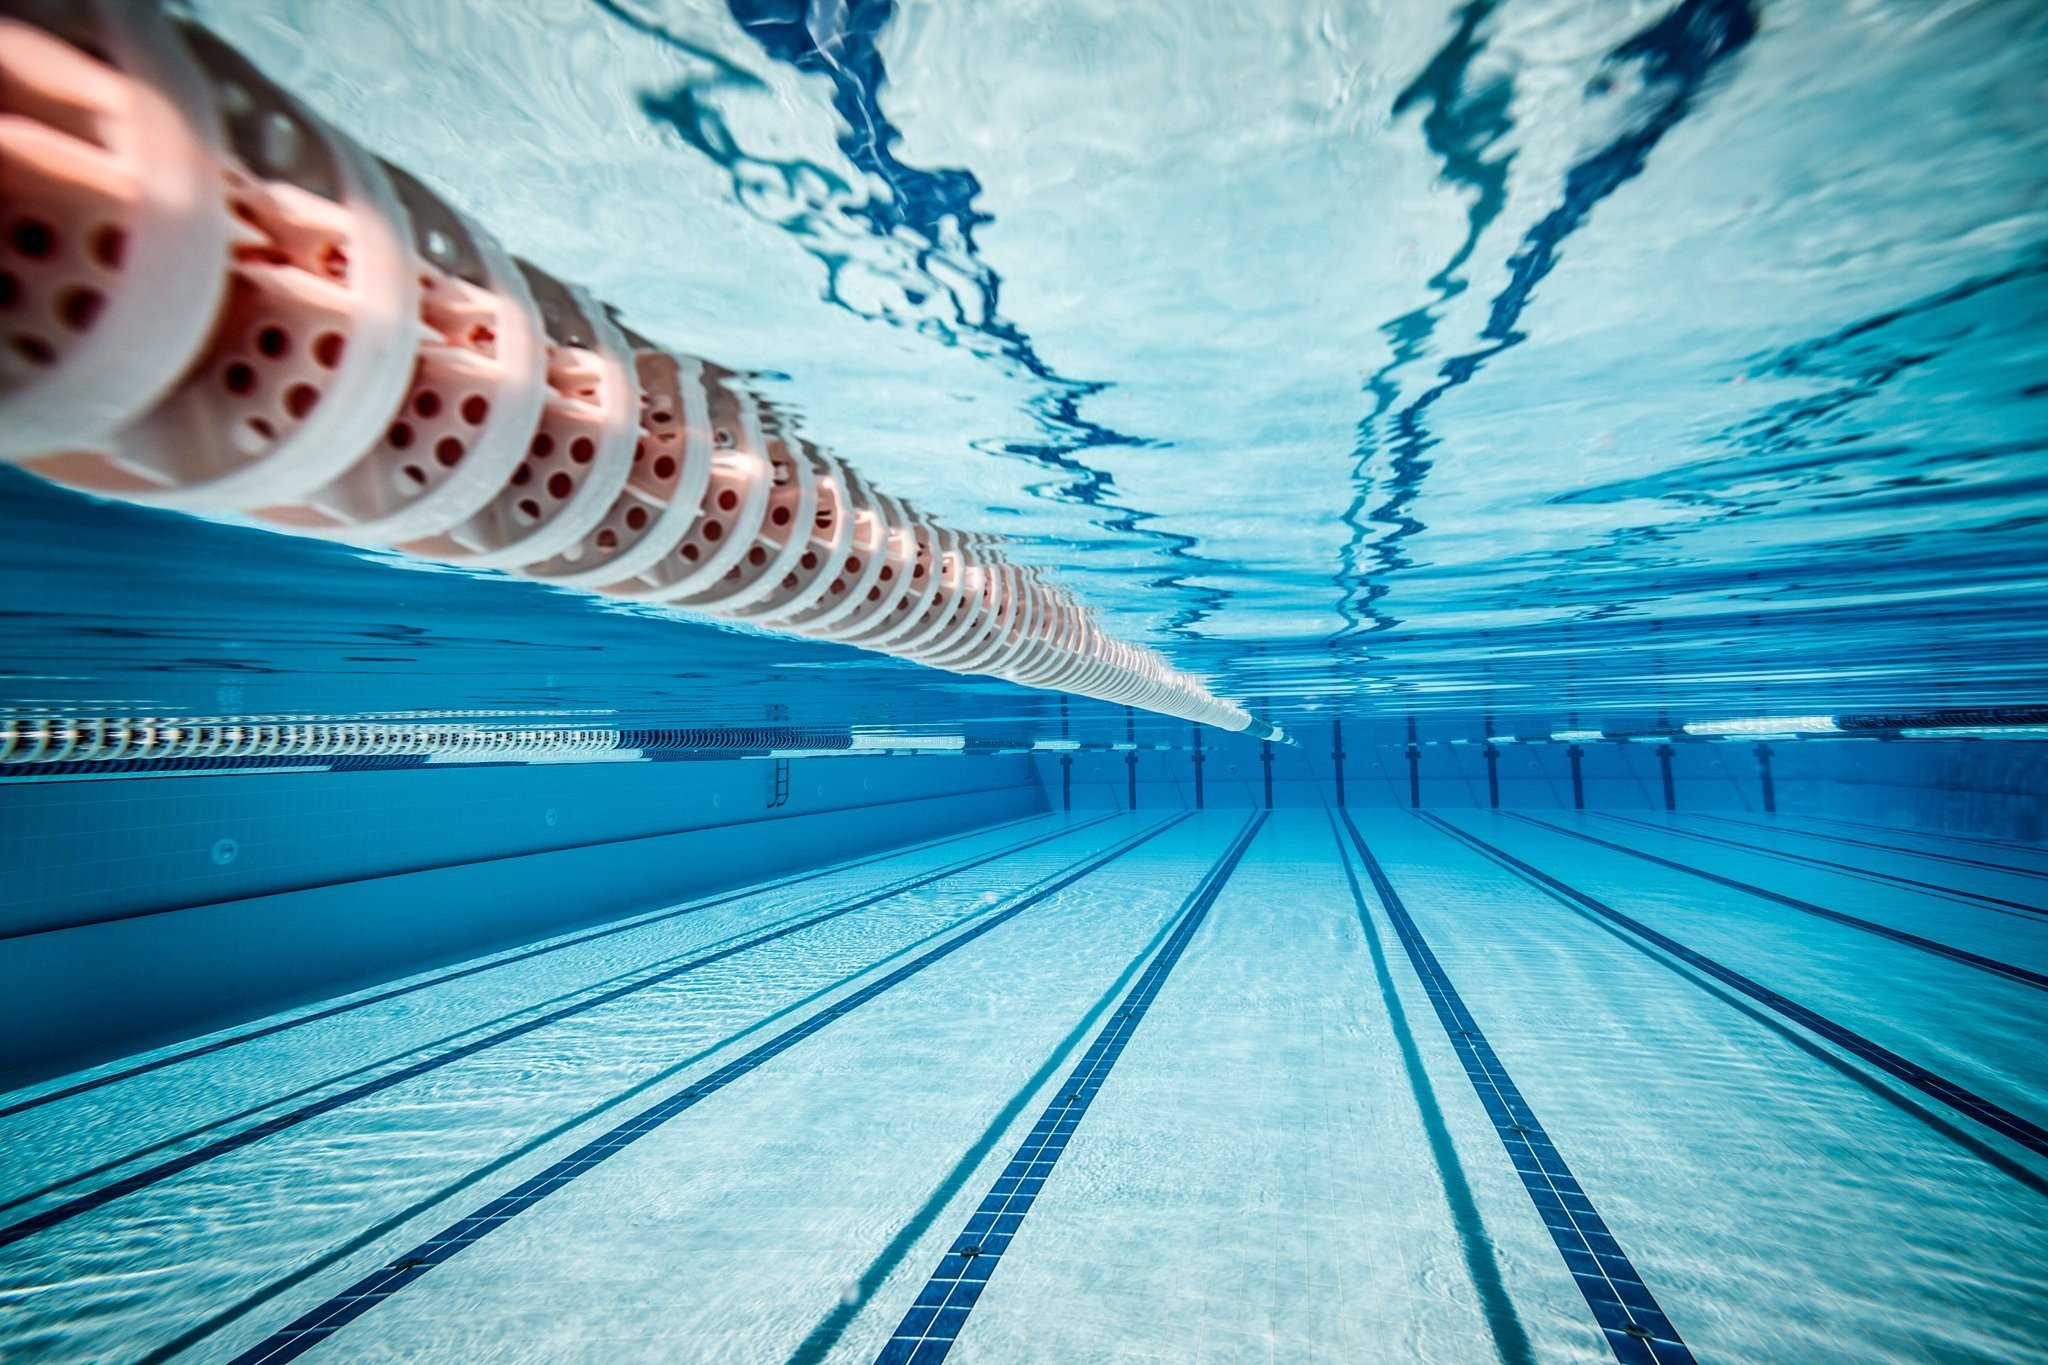 Water Underwater Swimming Pool Sports Swimming Tiles Lines Reflection Hd Wallpapers Desktop And Mobile Images Photos